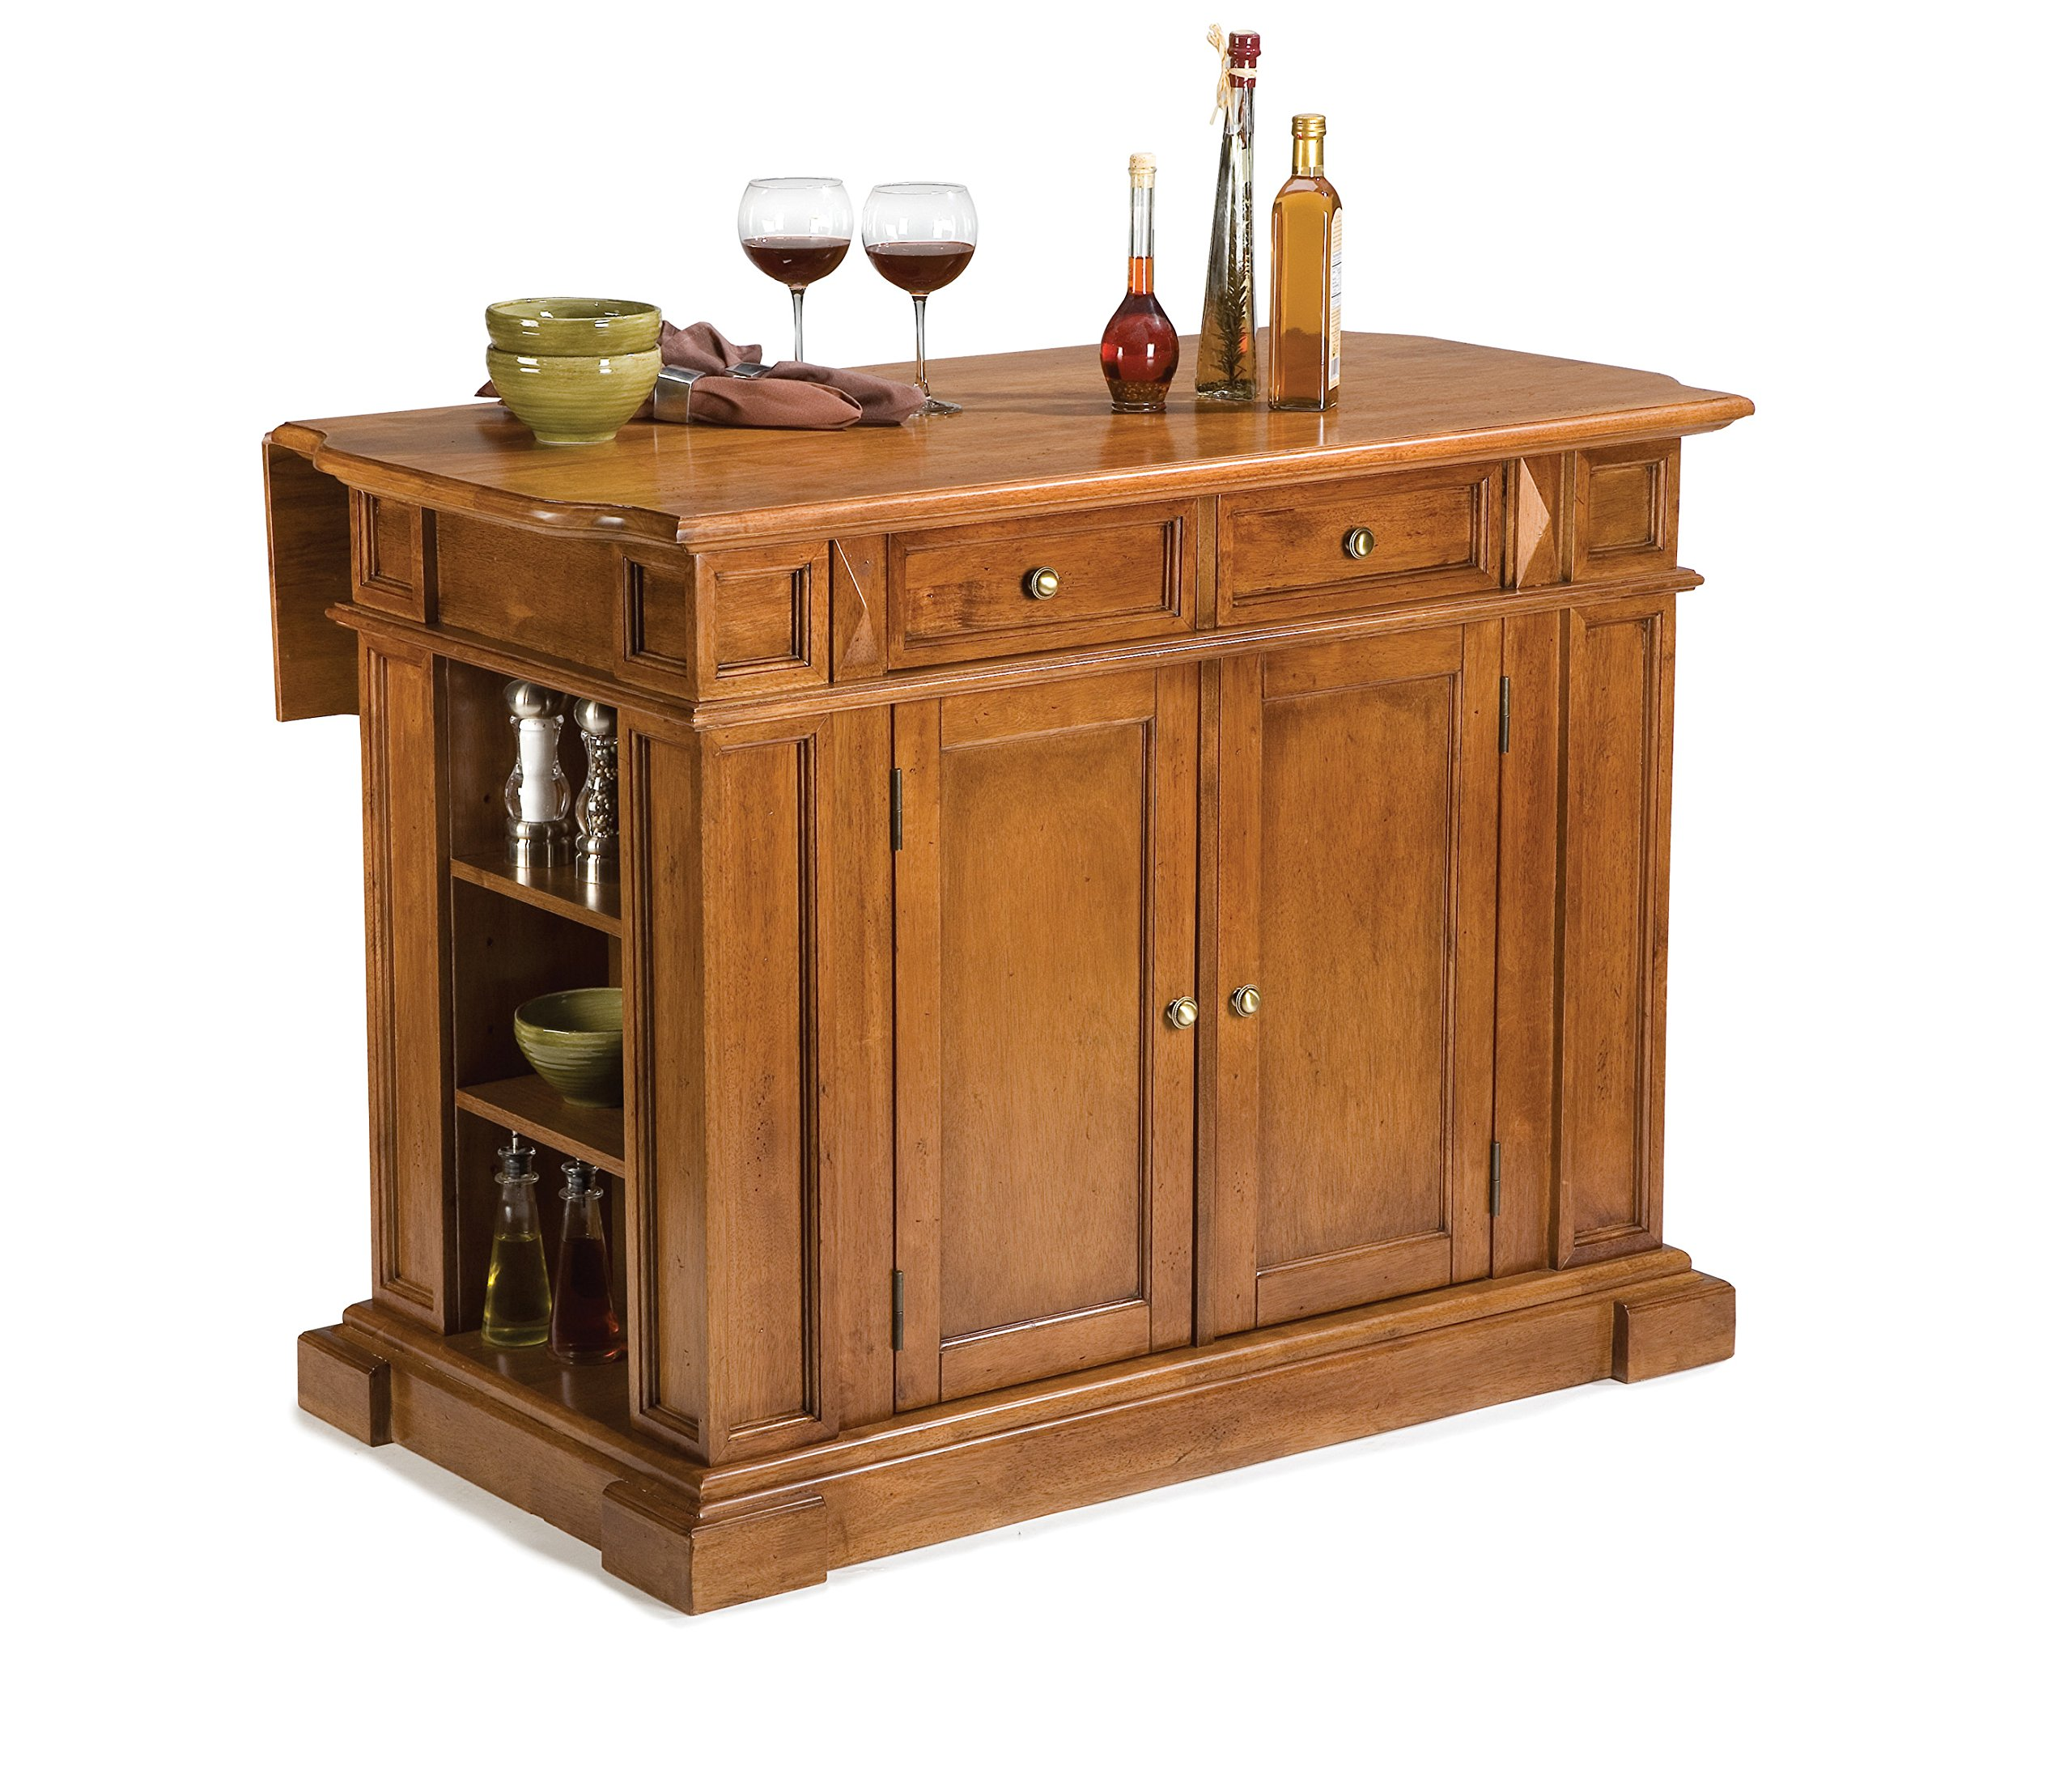 Americana Oak Kitchen Island by Home Styles by Home Styles